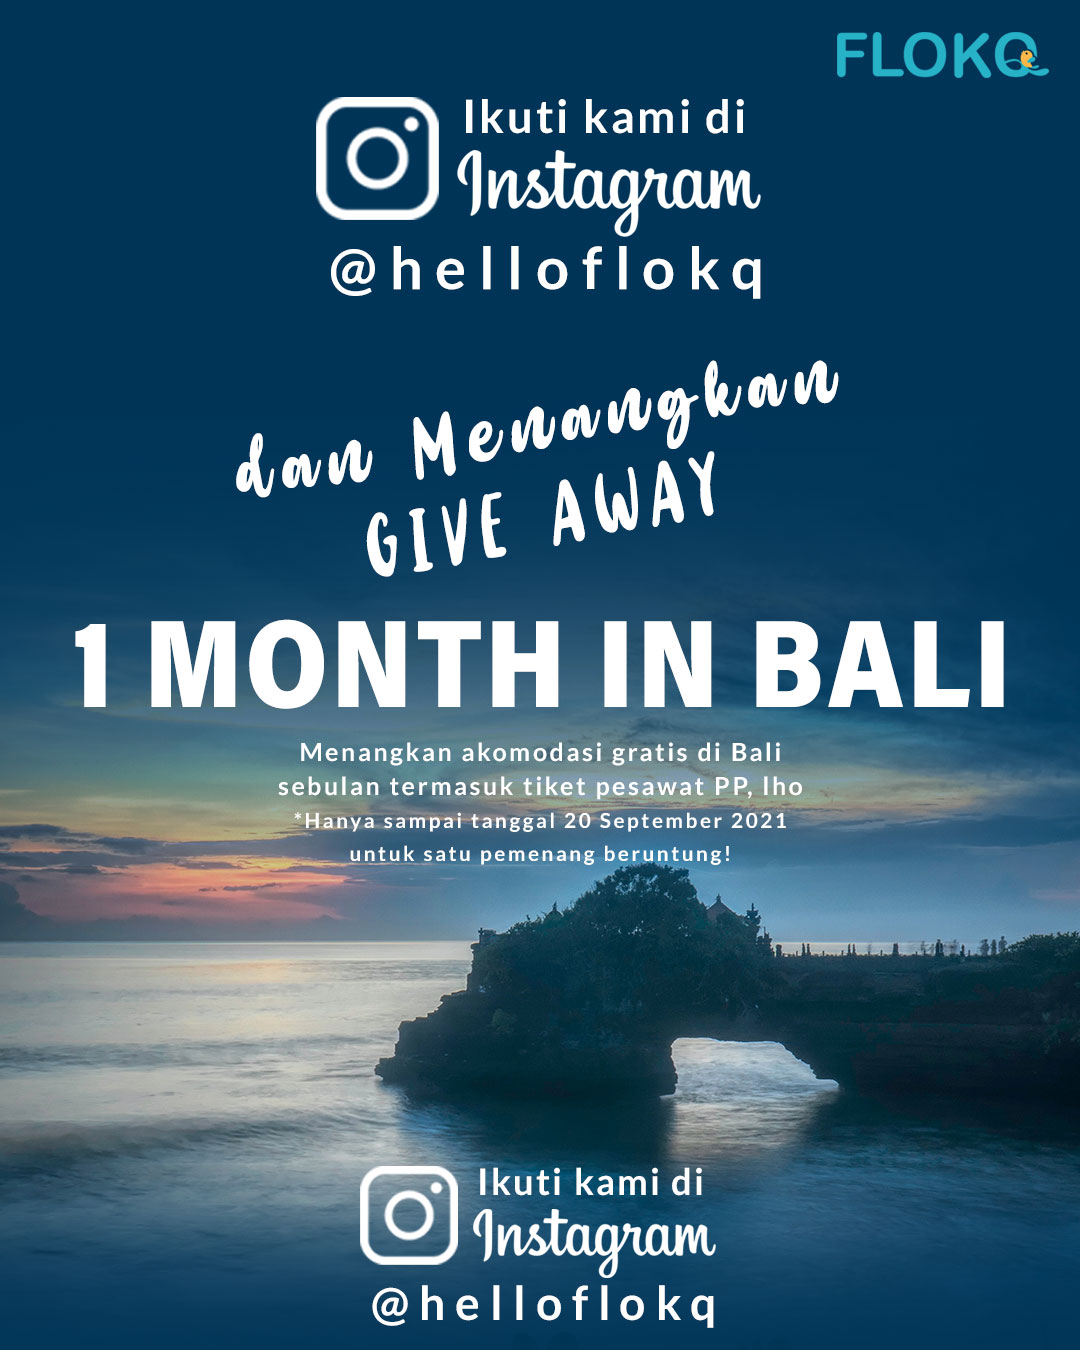 Flokq Giveaway - 1 Month in Bali